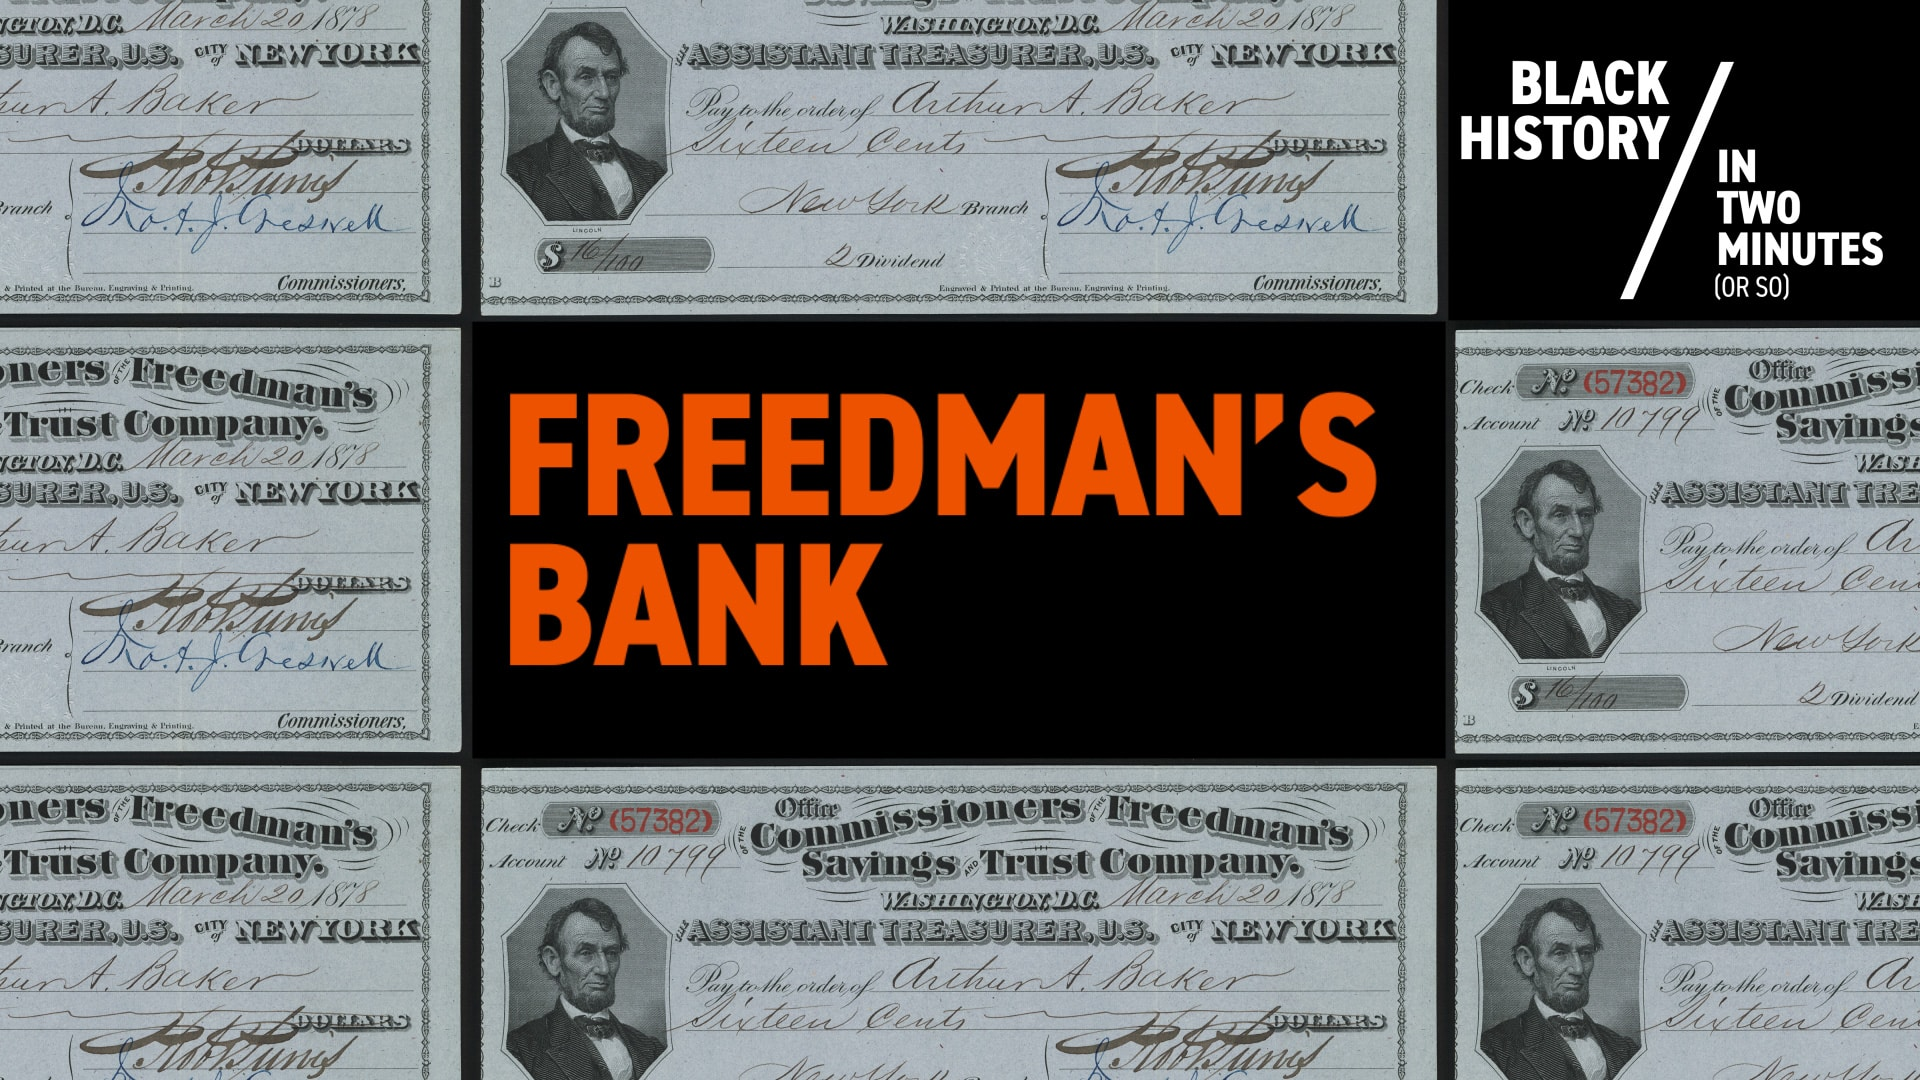 Freedman's Bank | Black History in Two Minutes